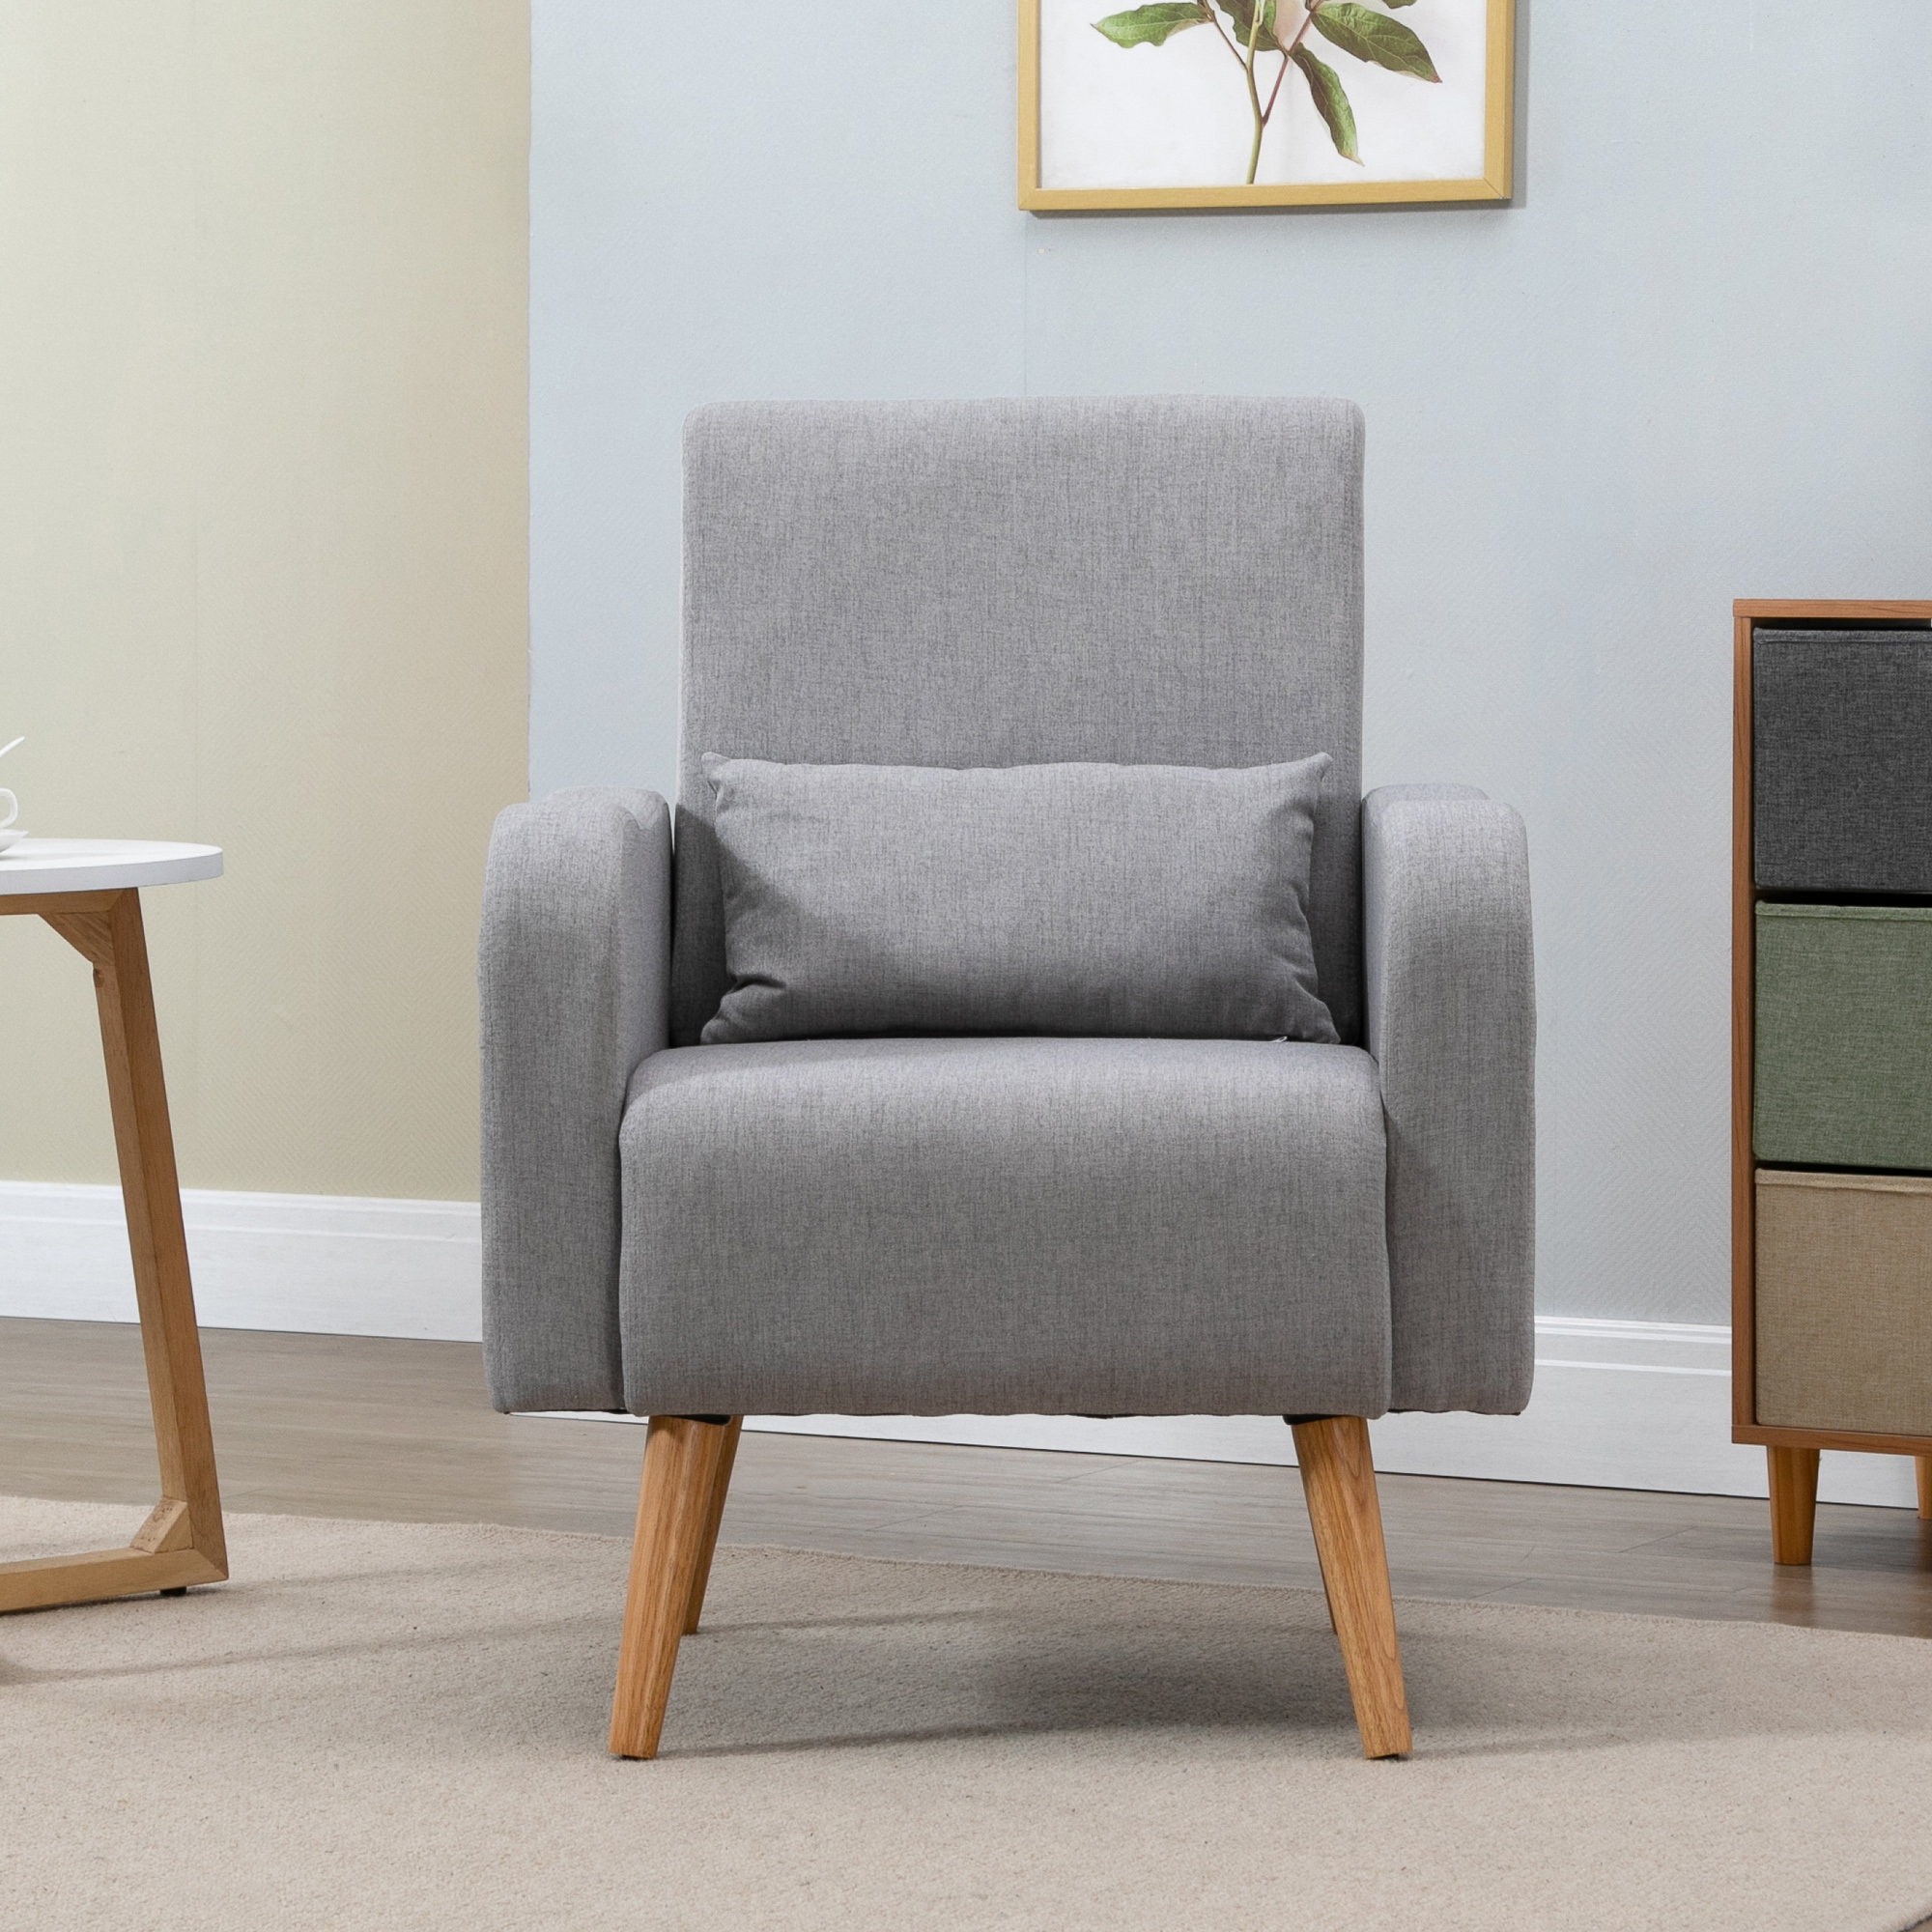 Homcom Nordic Armchair Solid Wood Curved Chair Living Room Linen 5056029835562 Ebay